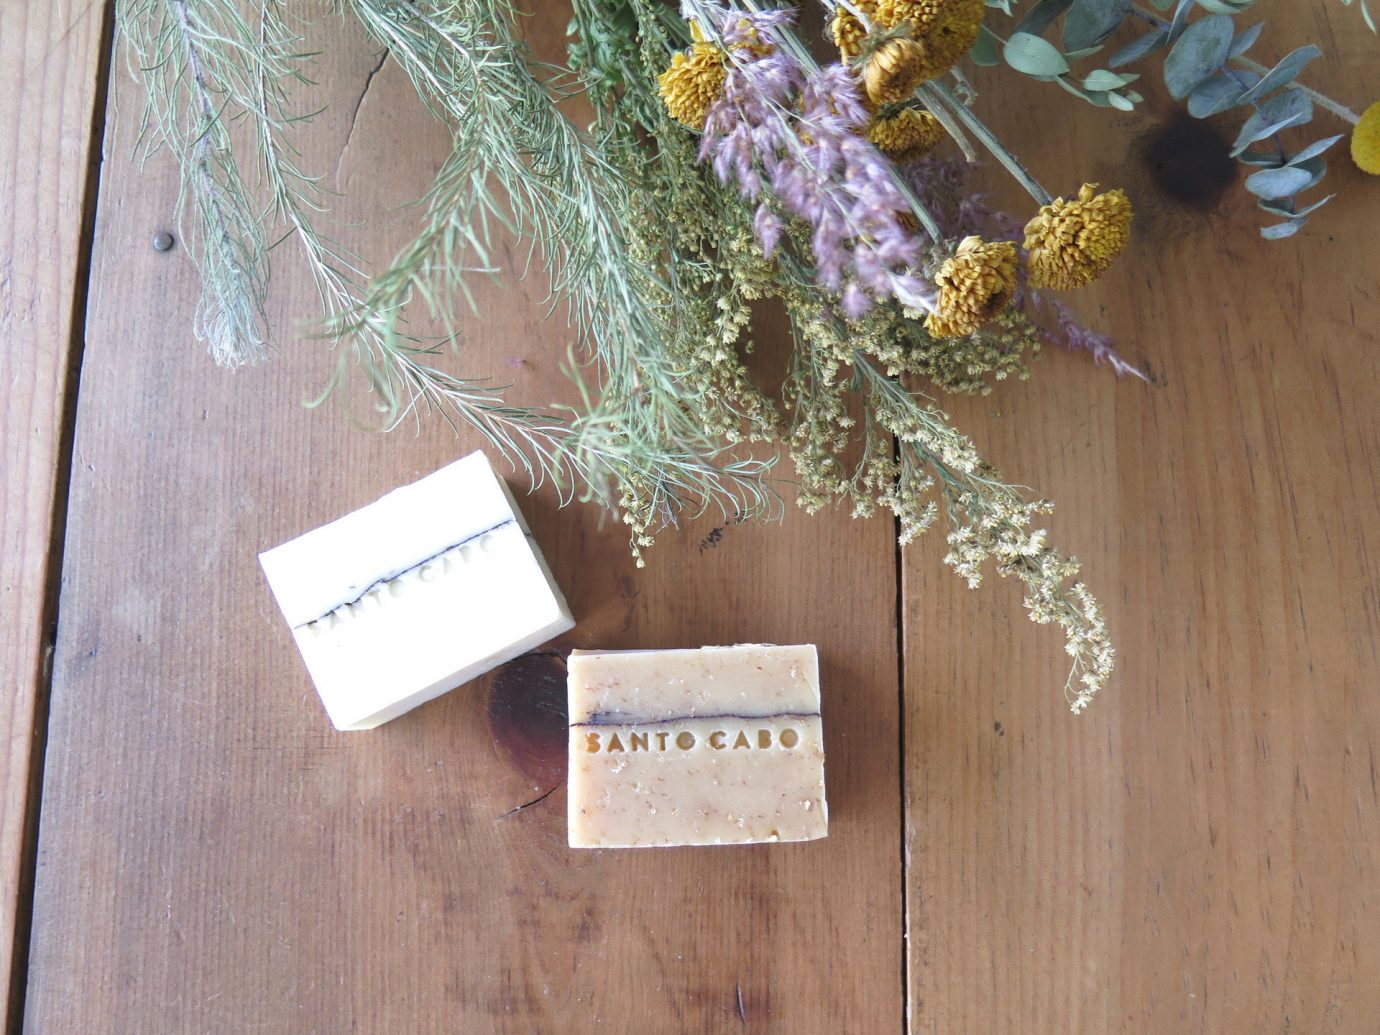 artisanal Boutique charming crafts homey Rustic soap toiletries Trip Ideas table wooden plant flower spring